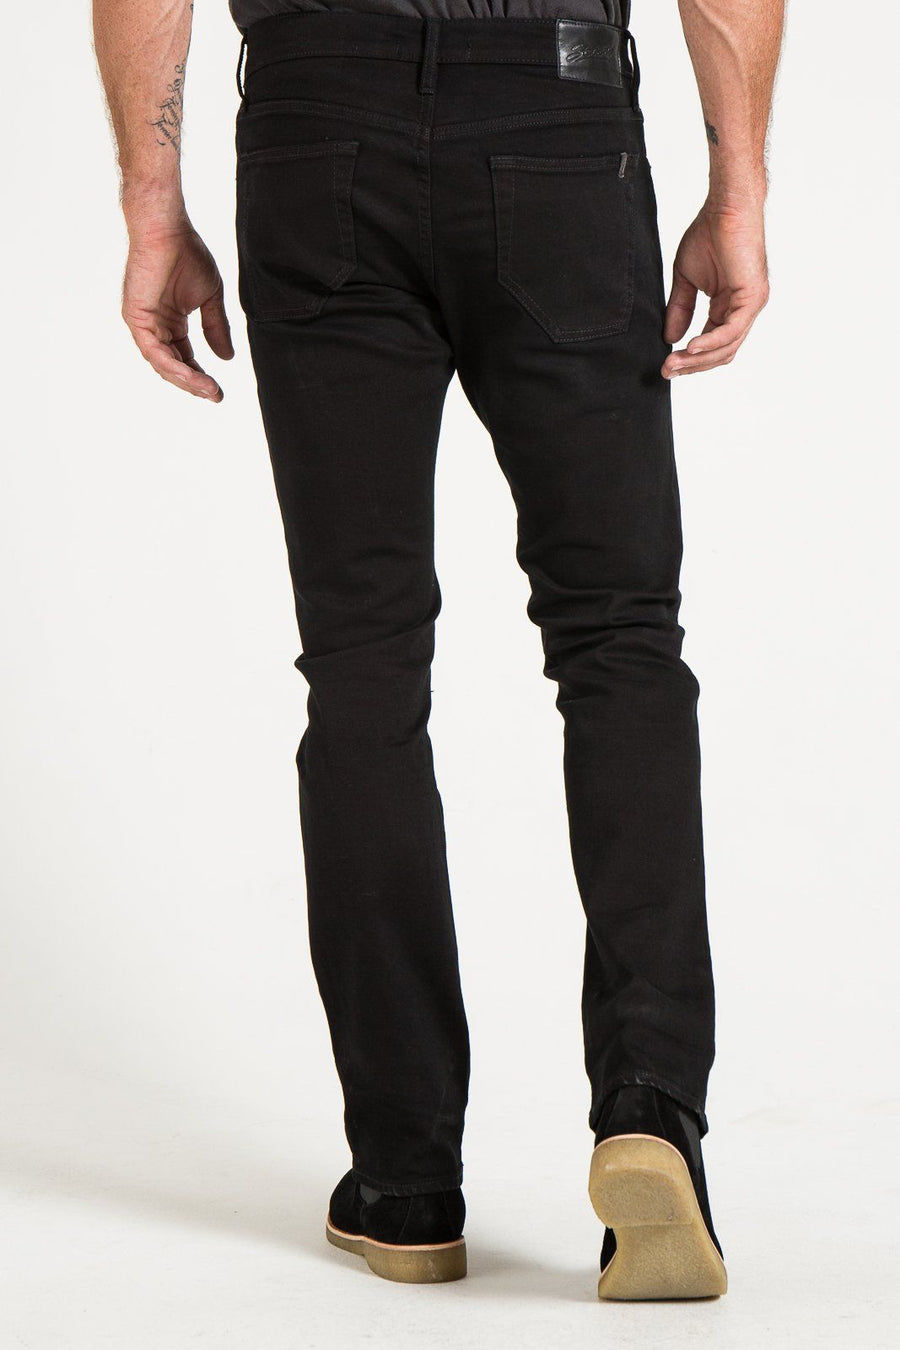 BARFLY SLIM IN BLACK OVERDYED DENIM